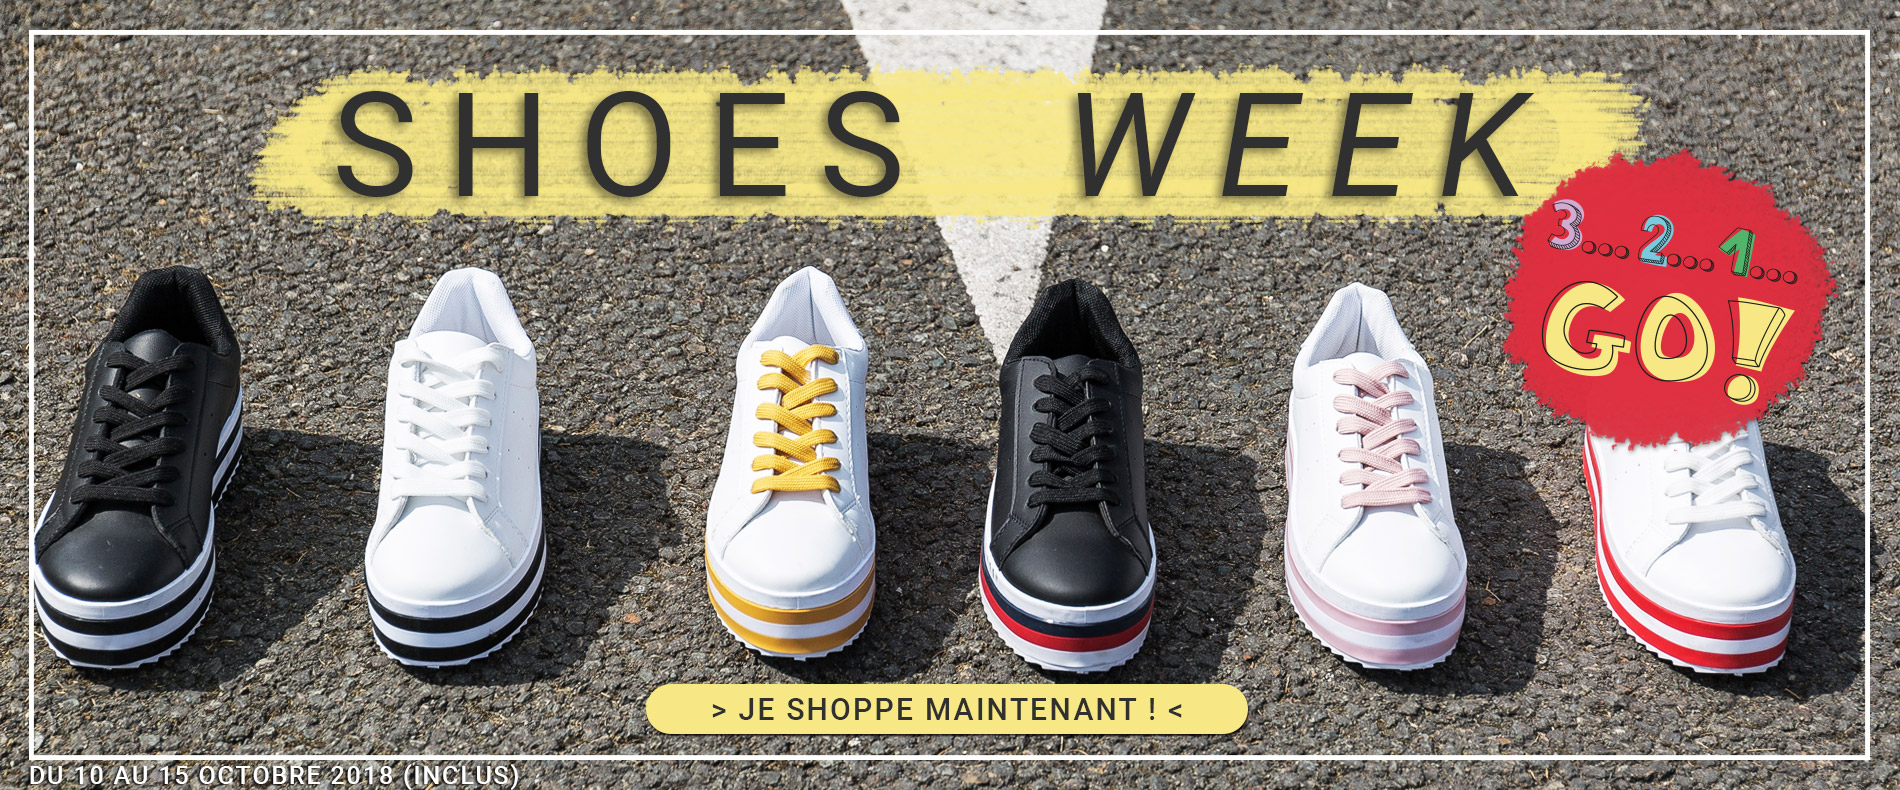 SHOES WEEK